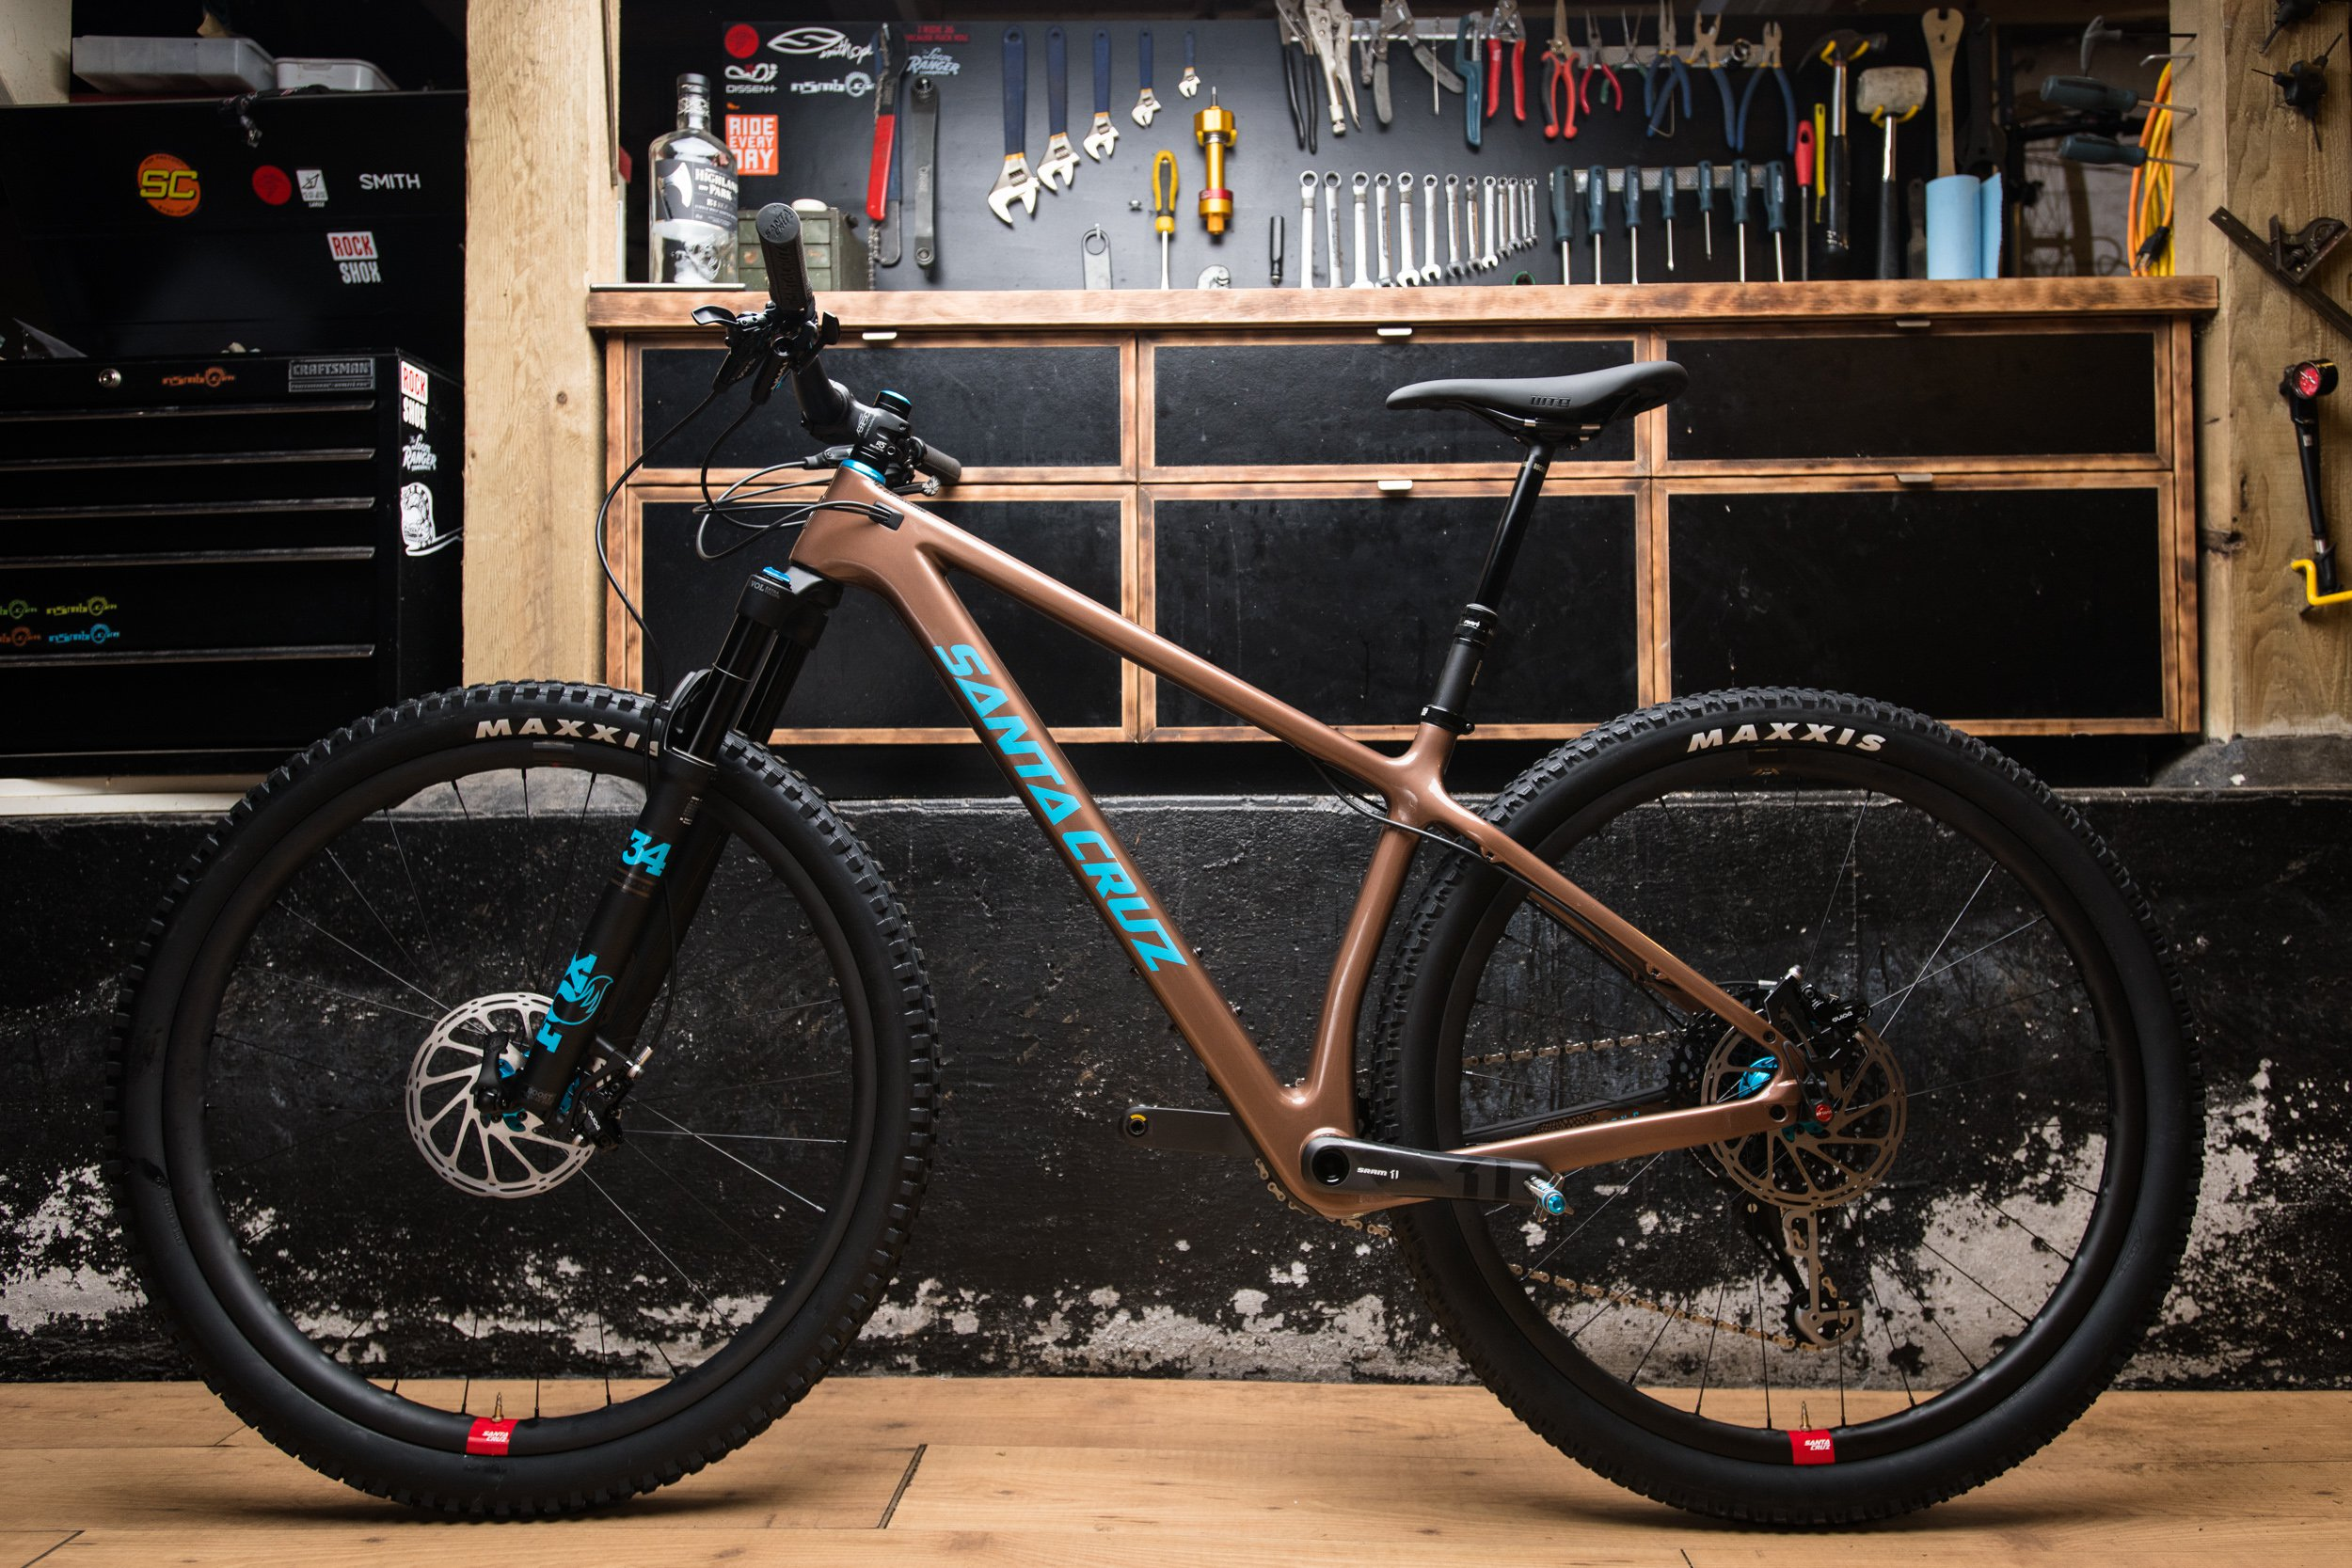 nsmb2019-gearreview-firstlook-santacruz-chameleon-7352.jpg